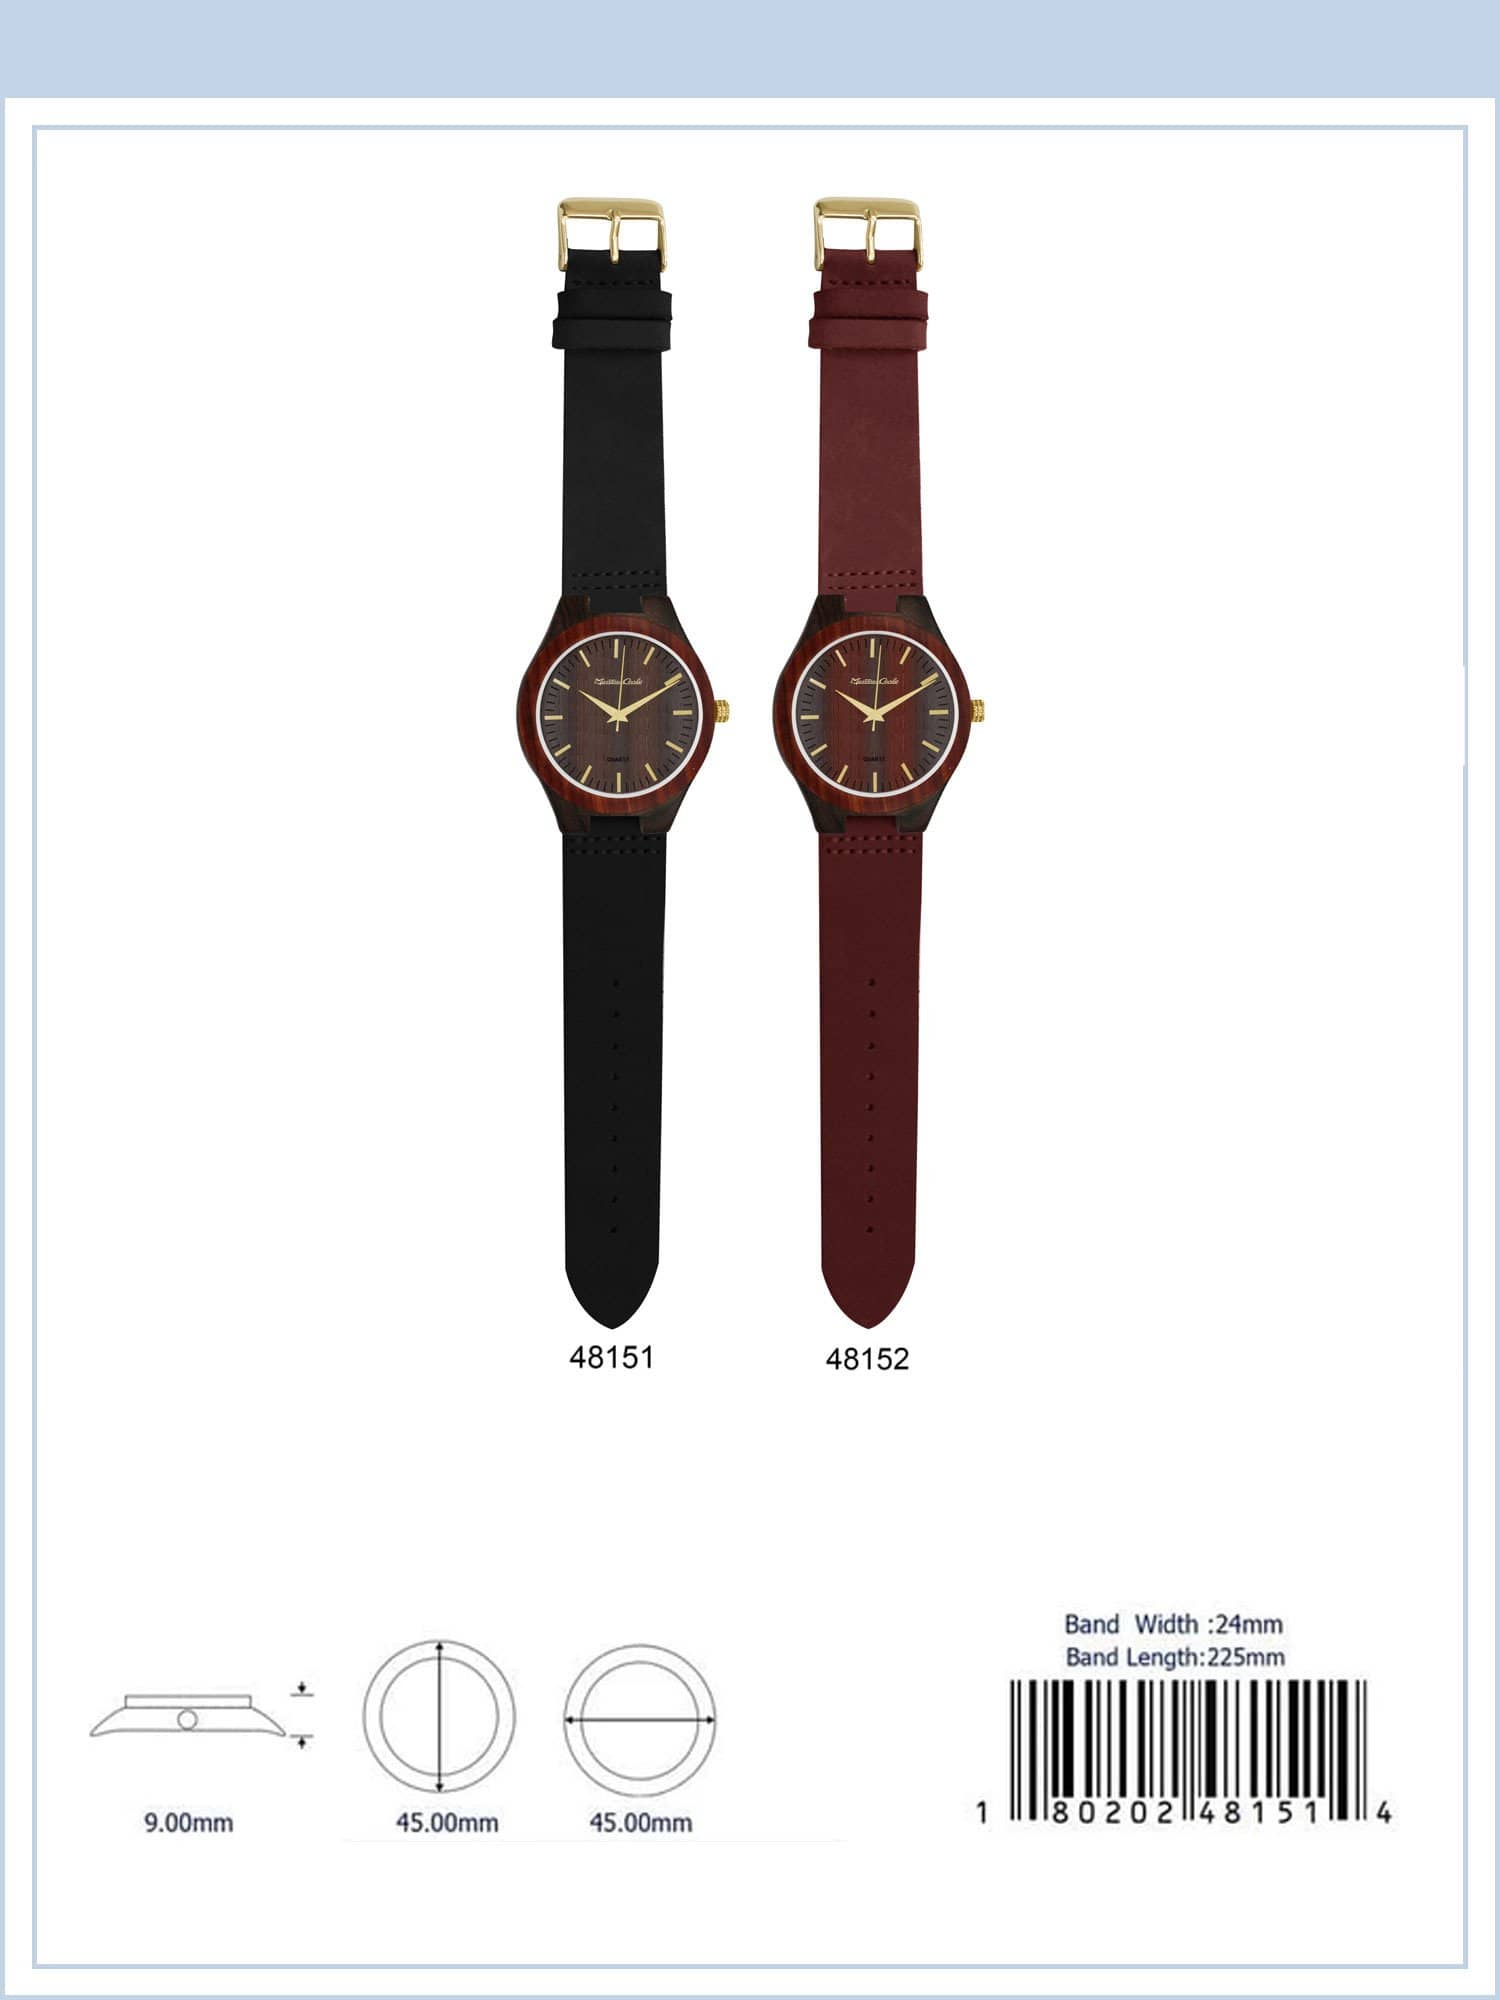 4815 - Bamboo Wooden Watch with Suede Band